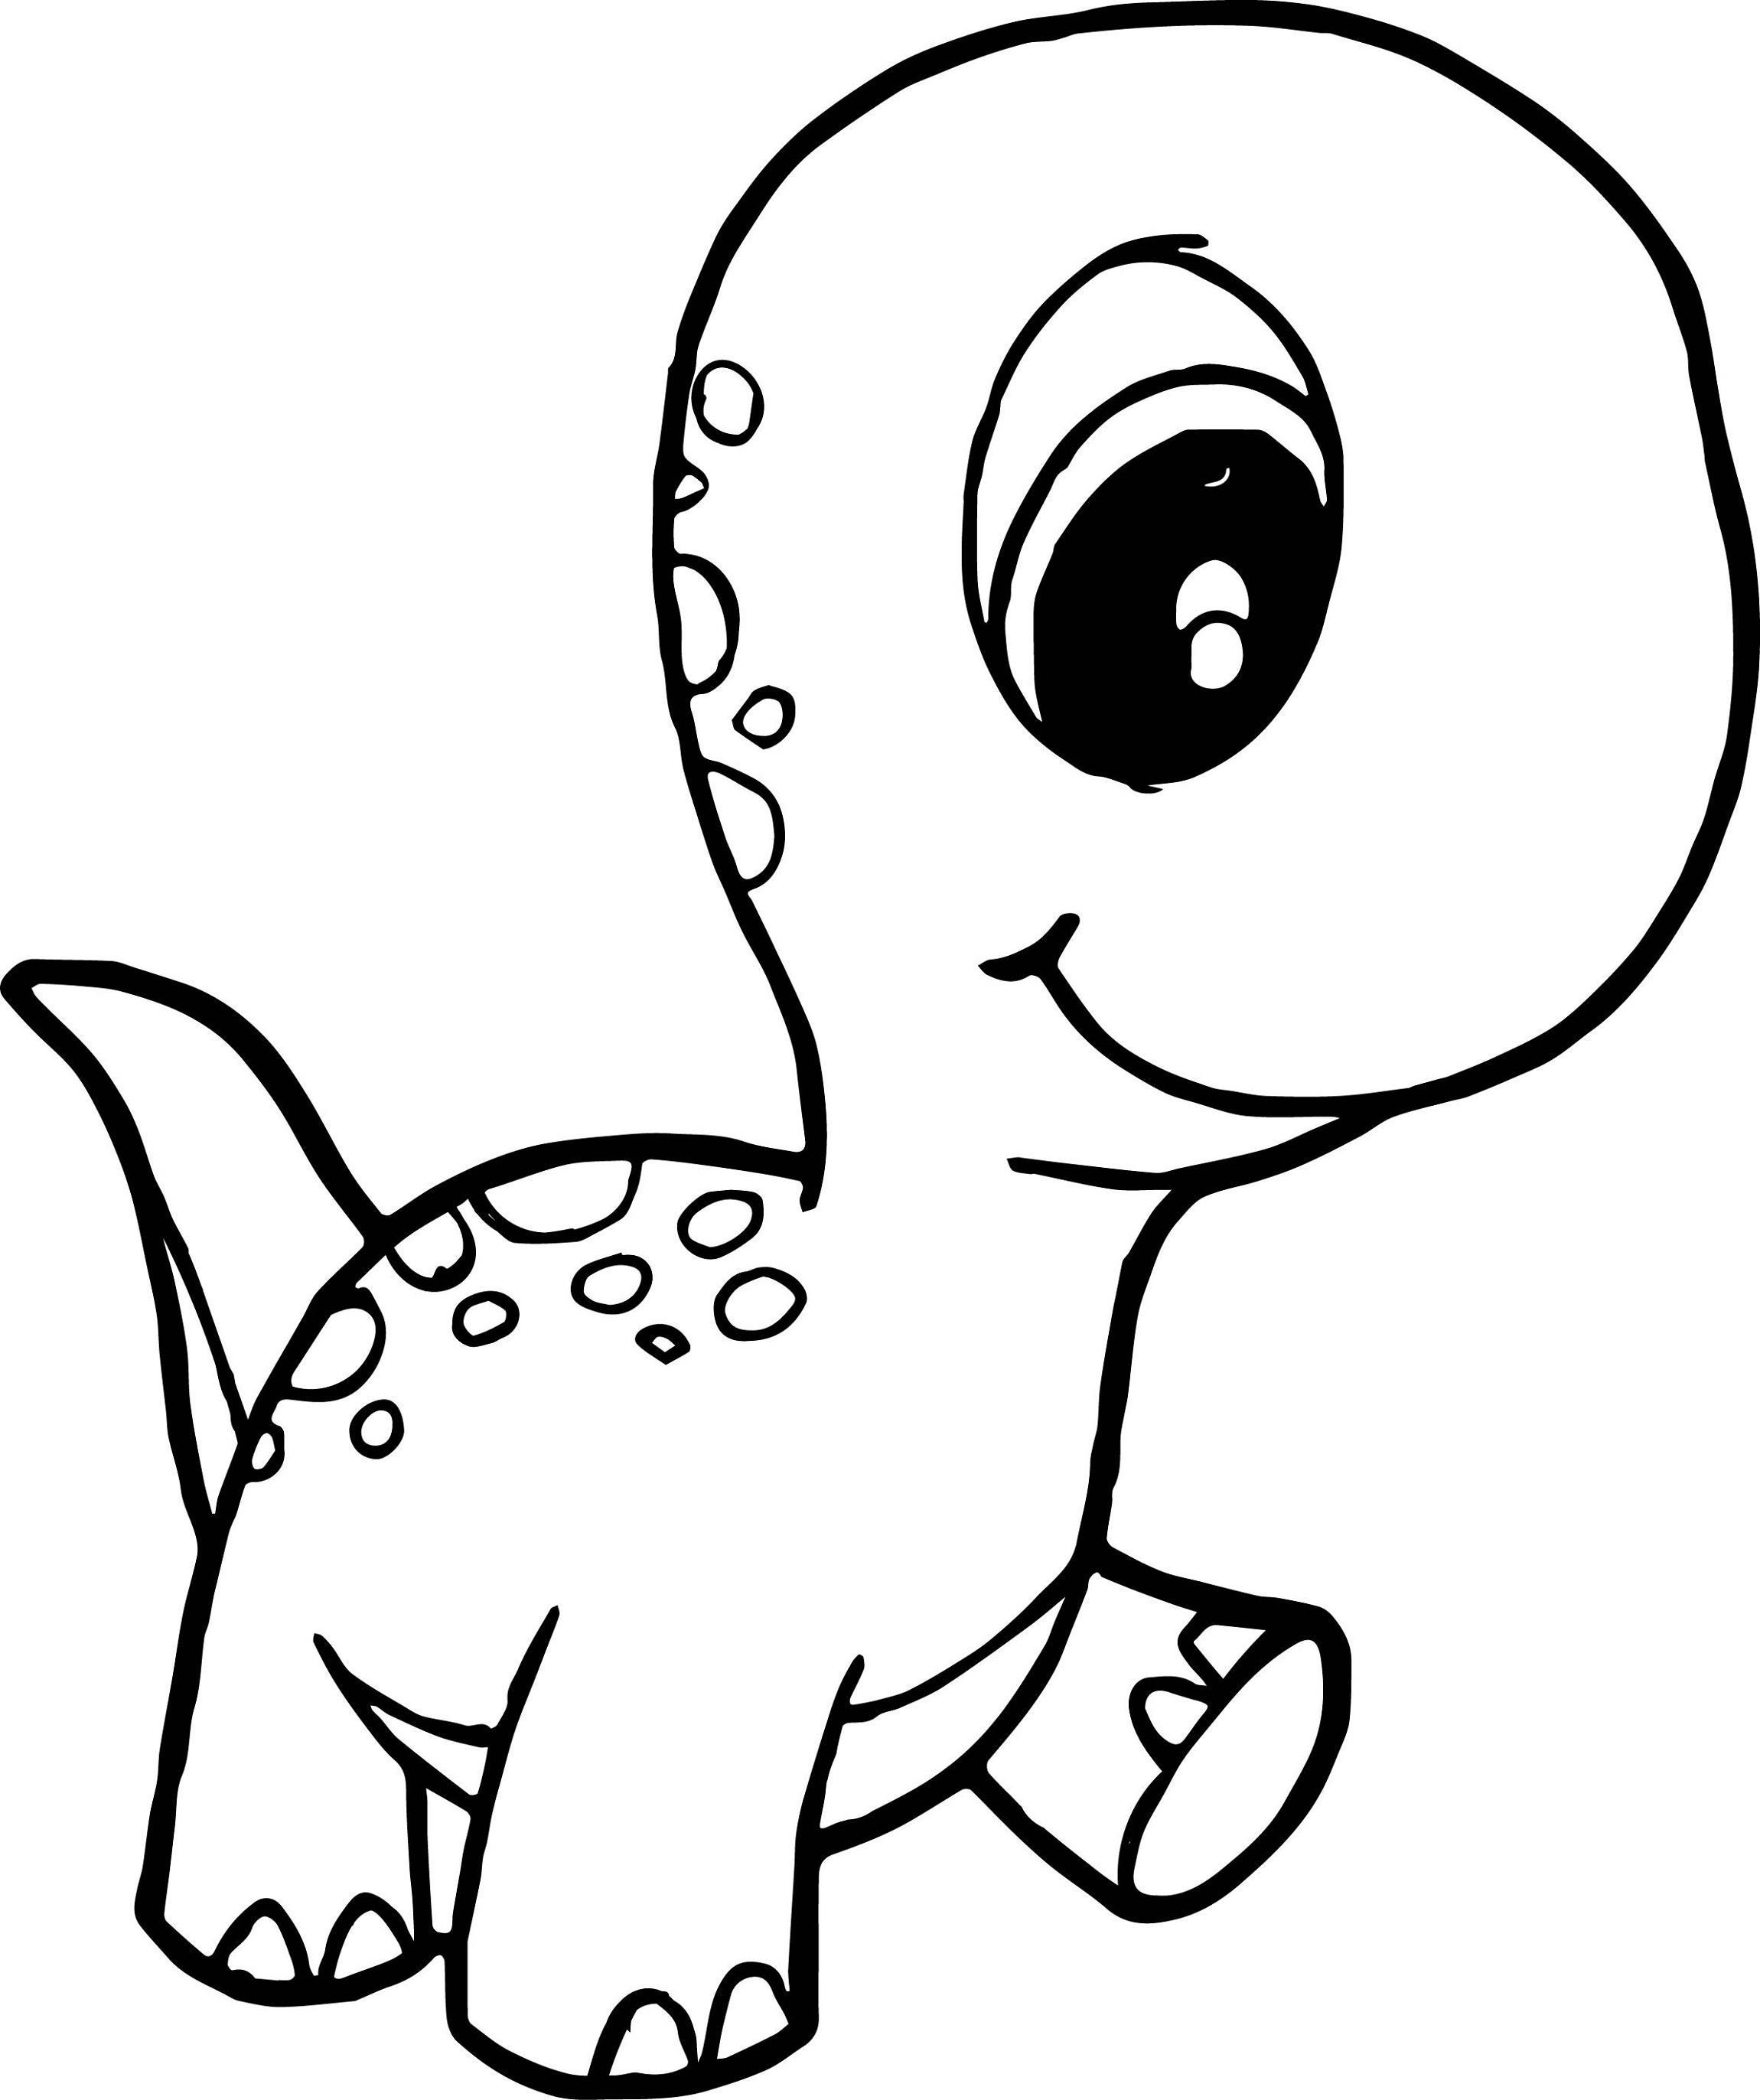 Baby Dinosaur Coloring Pages For Preschoolers Dinosaur Coloring